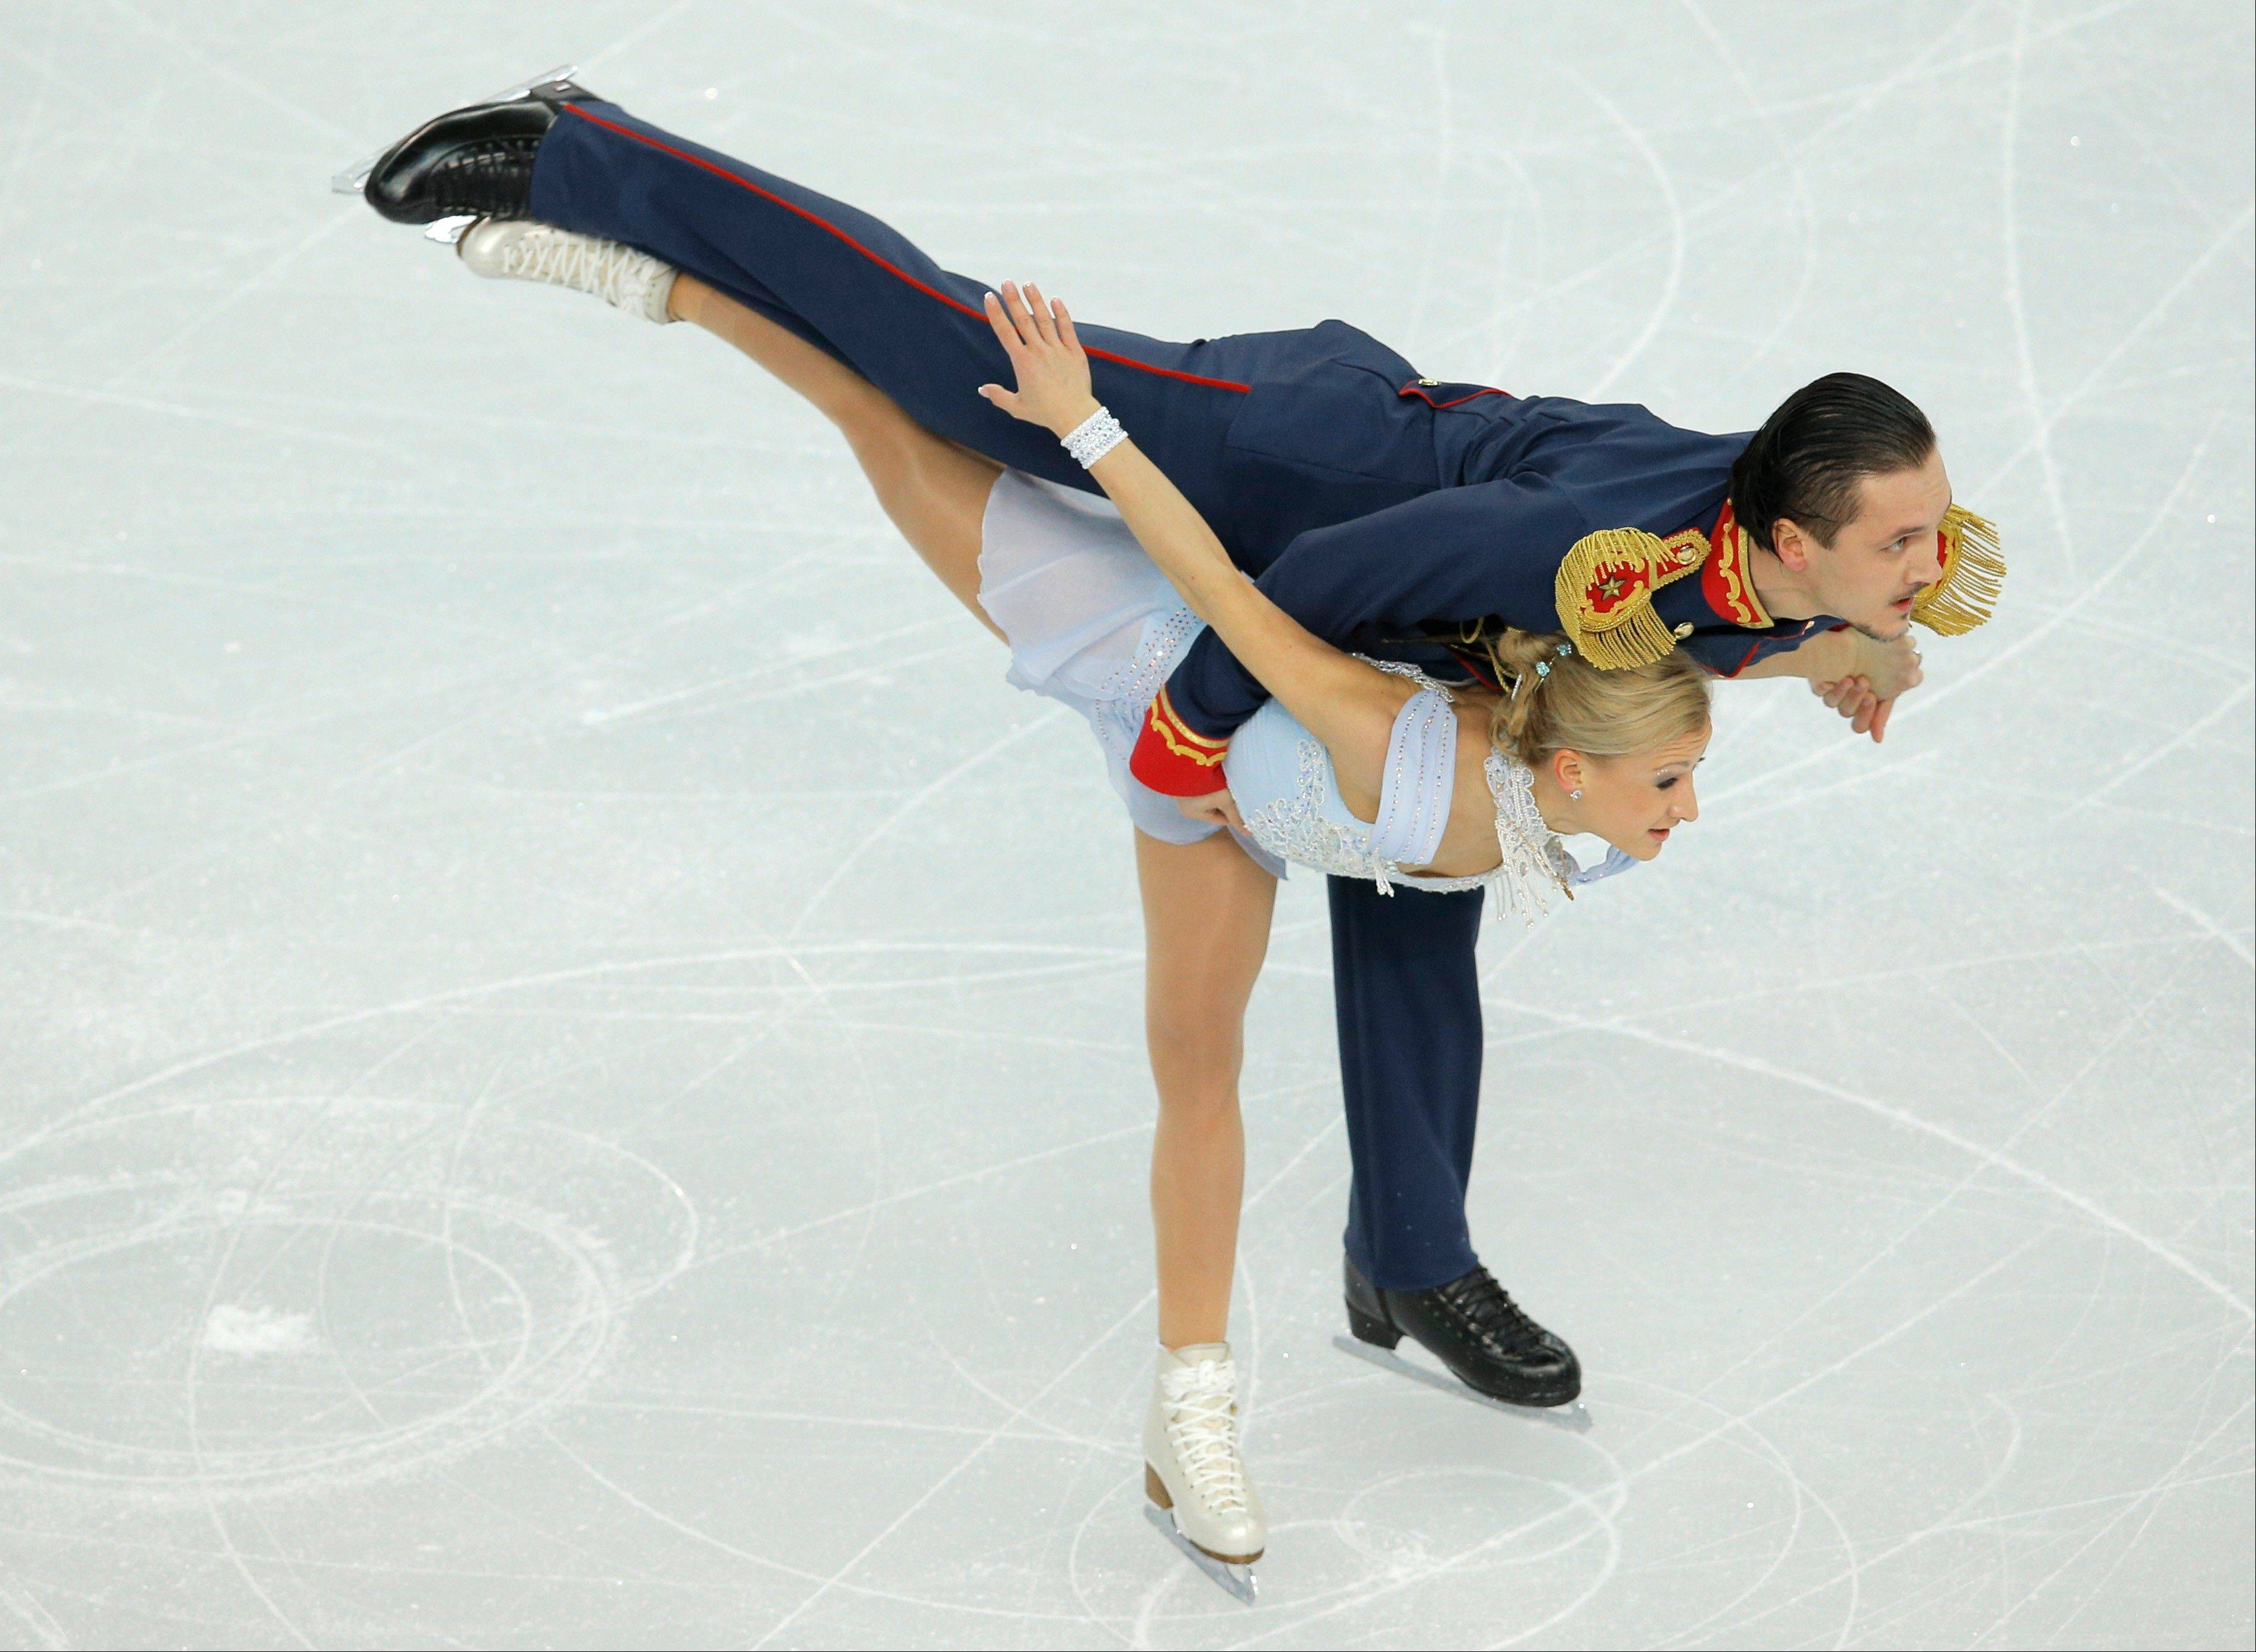 Tatiana Volosozhar and Maxim Trankov of Russia compete in the team pairs short program figure skating competition at the Iceberg Skating Palace during the 2014 Winter Olympics, Thursday, Feb. 6, 2014, in Sochi, Russia.